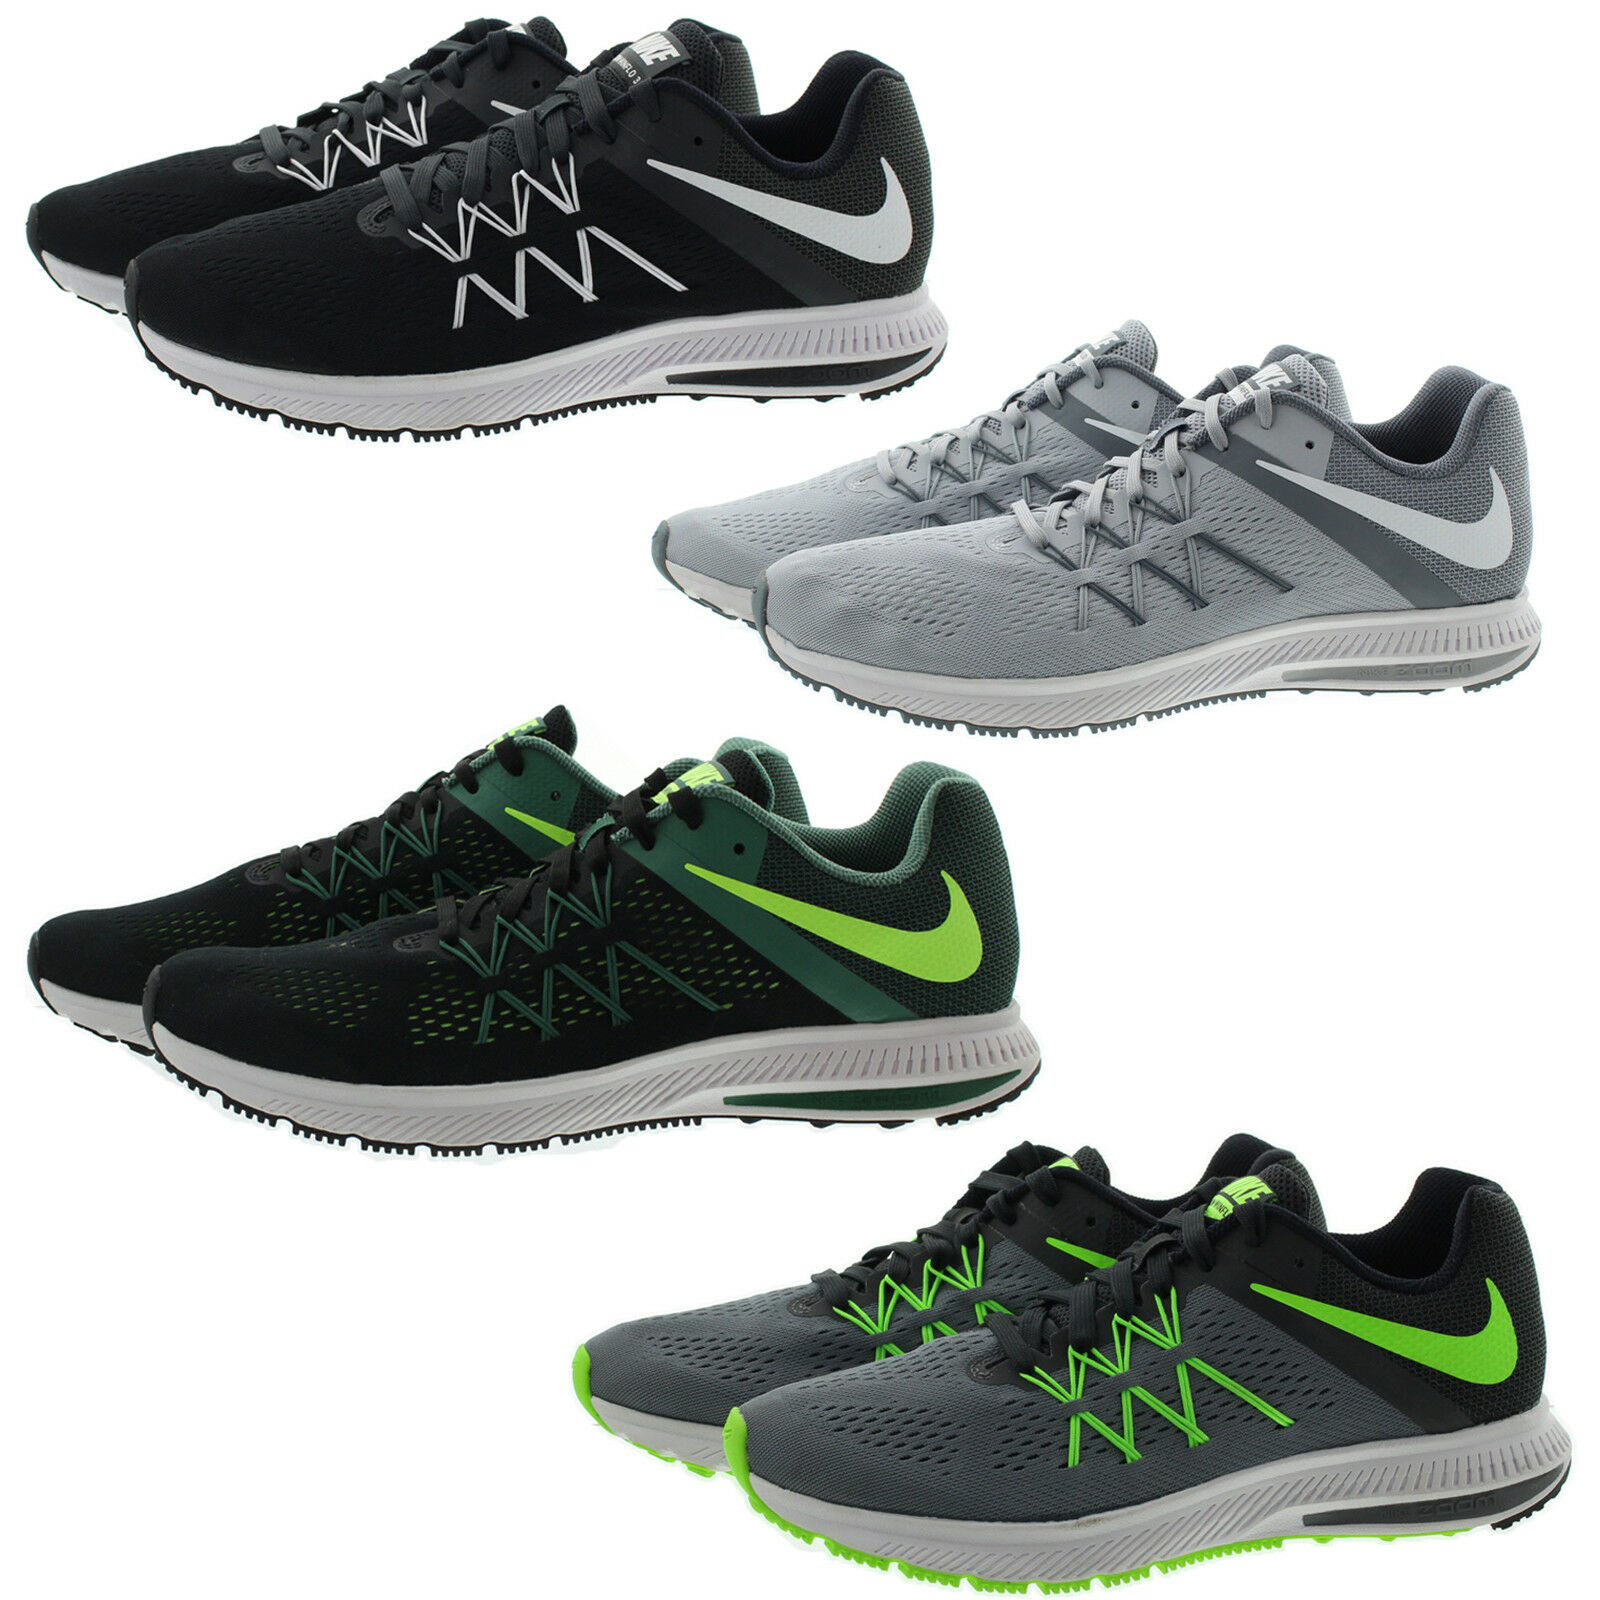 Nike 831561 Mens Zoom Winflo 3 Fitsole Low Top Running Training shoes Sneakers